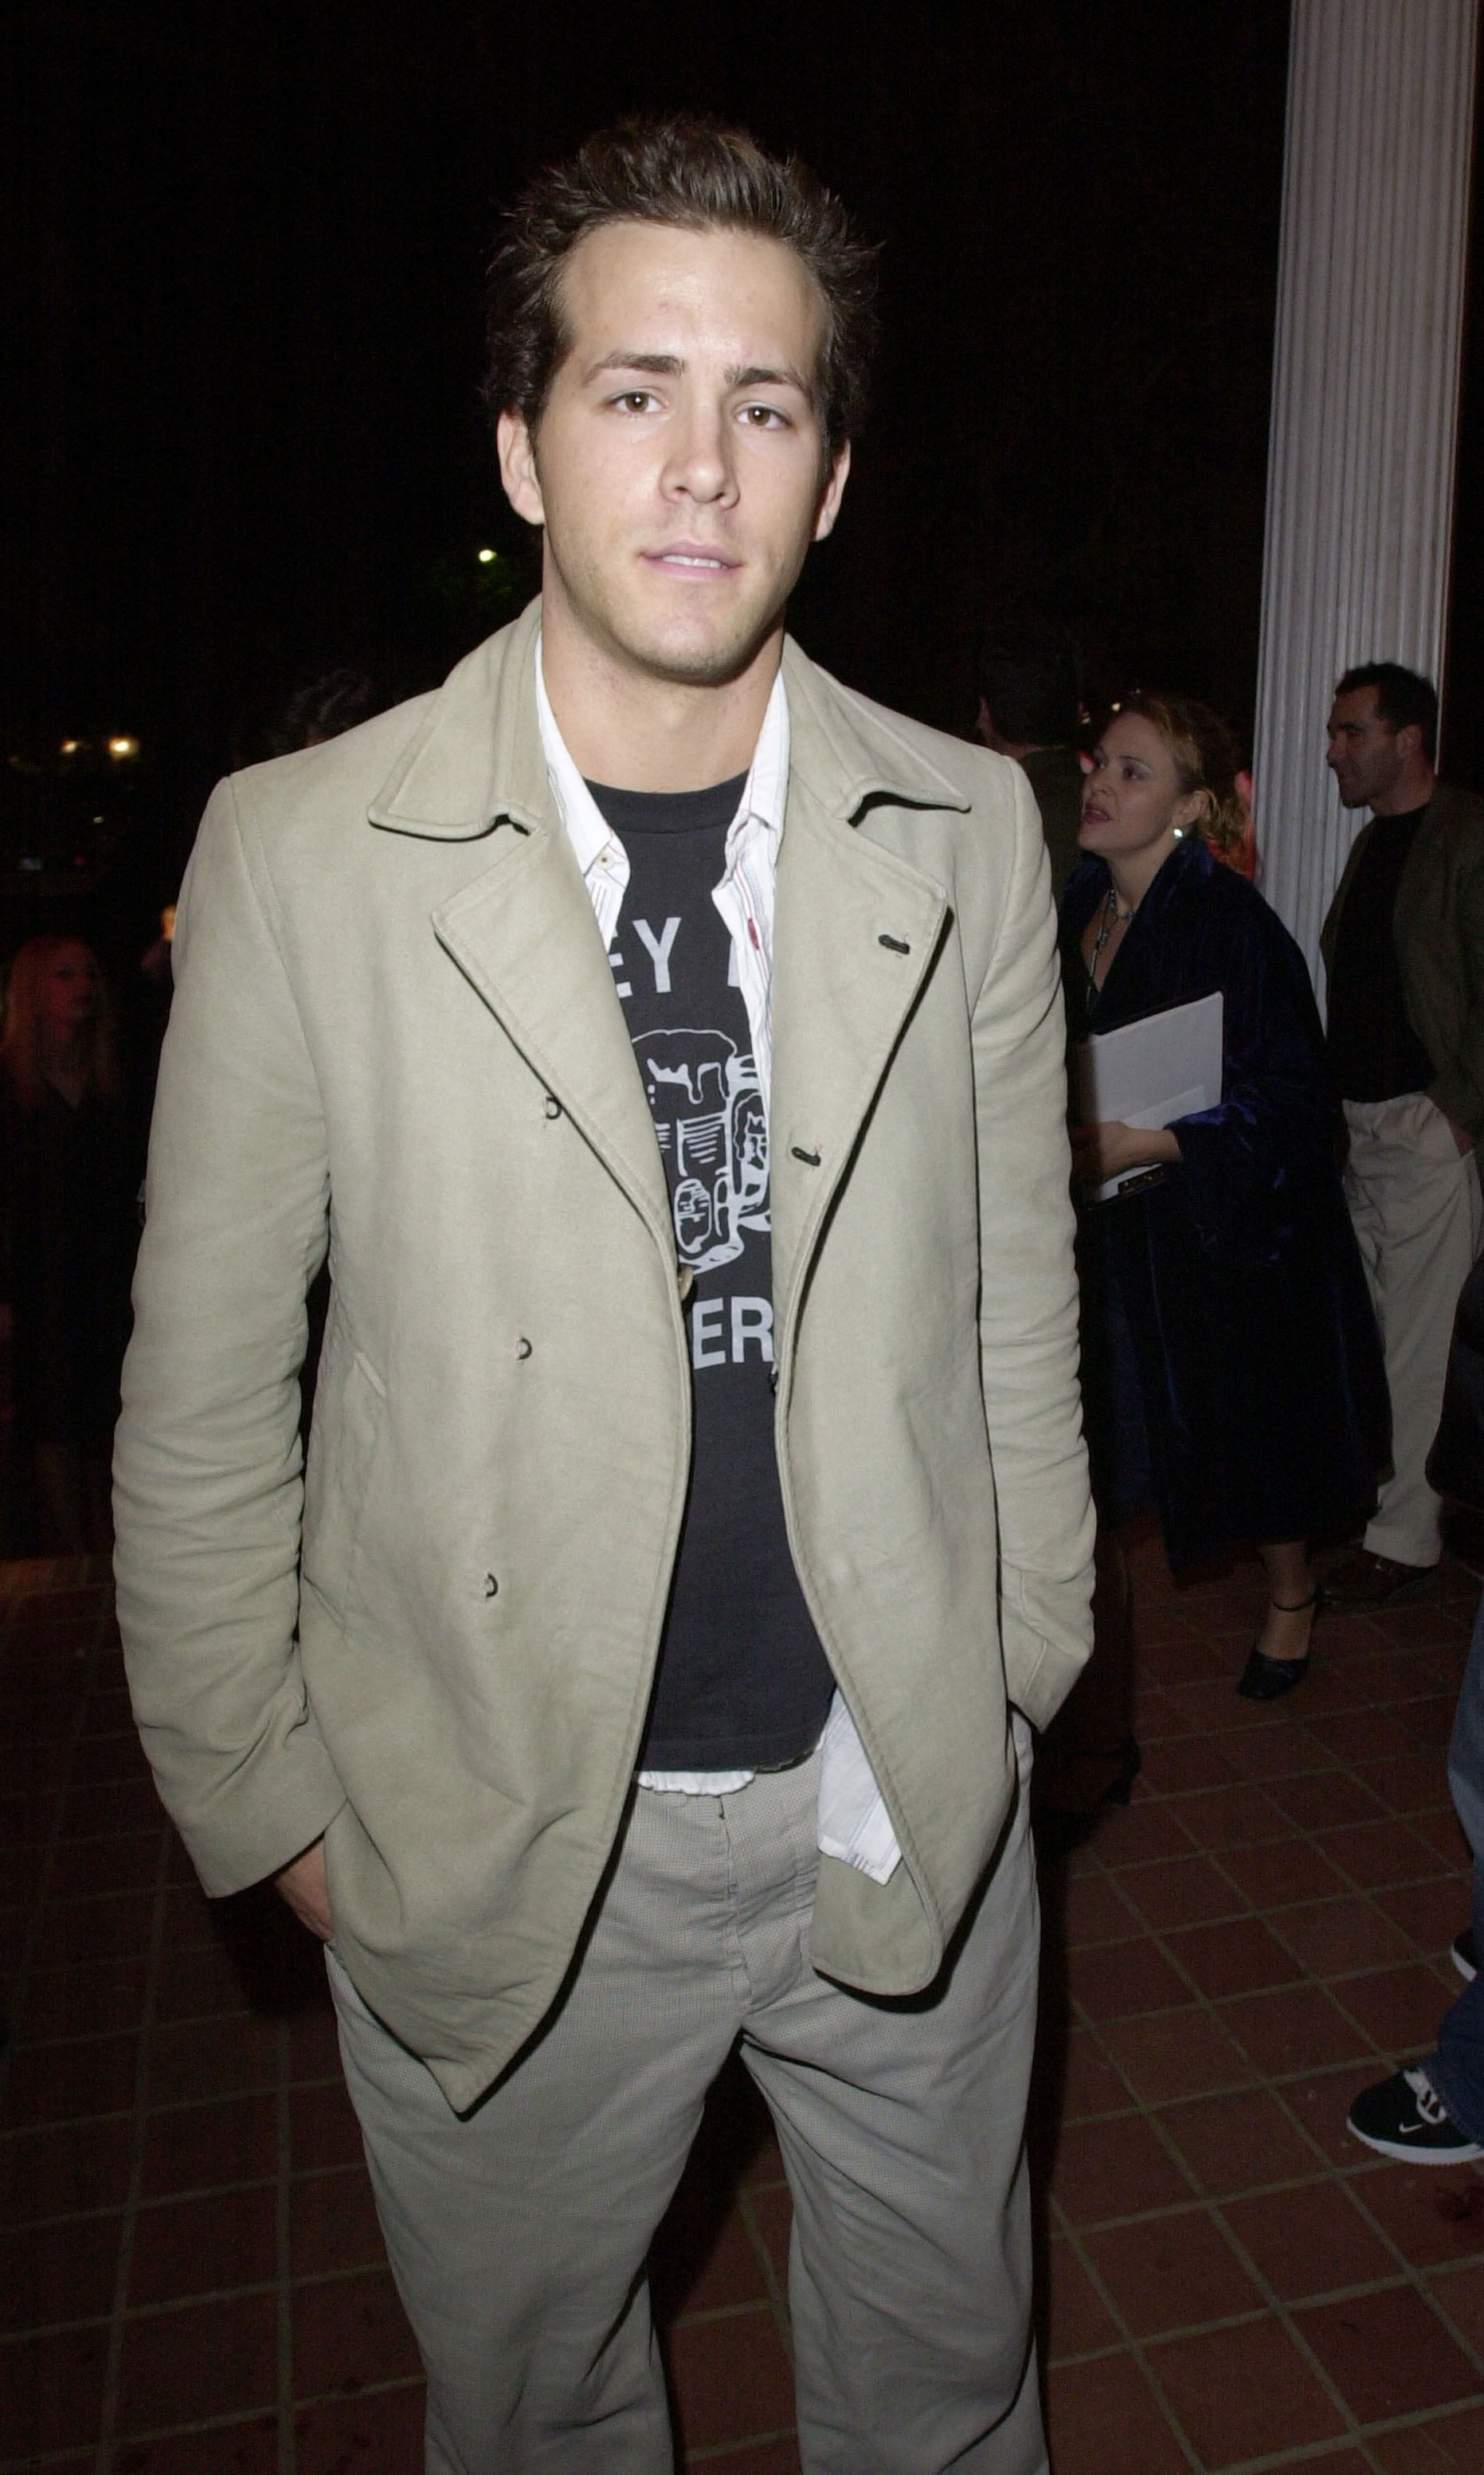 When He Struck a Pose at Playboy's 2002 Super Bowl Party